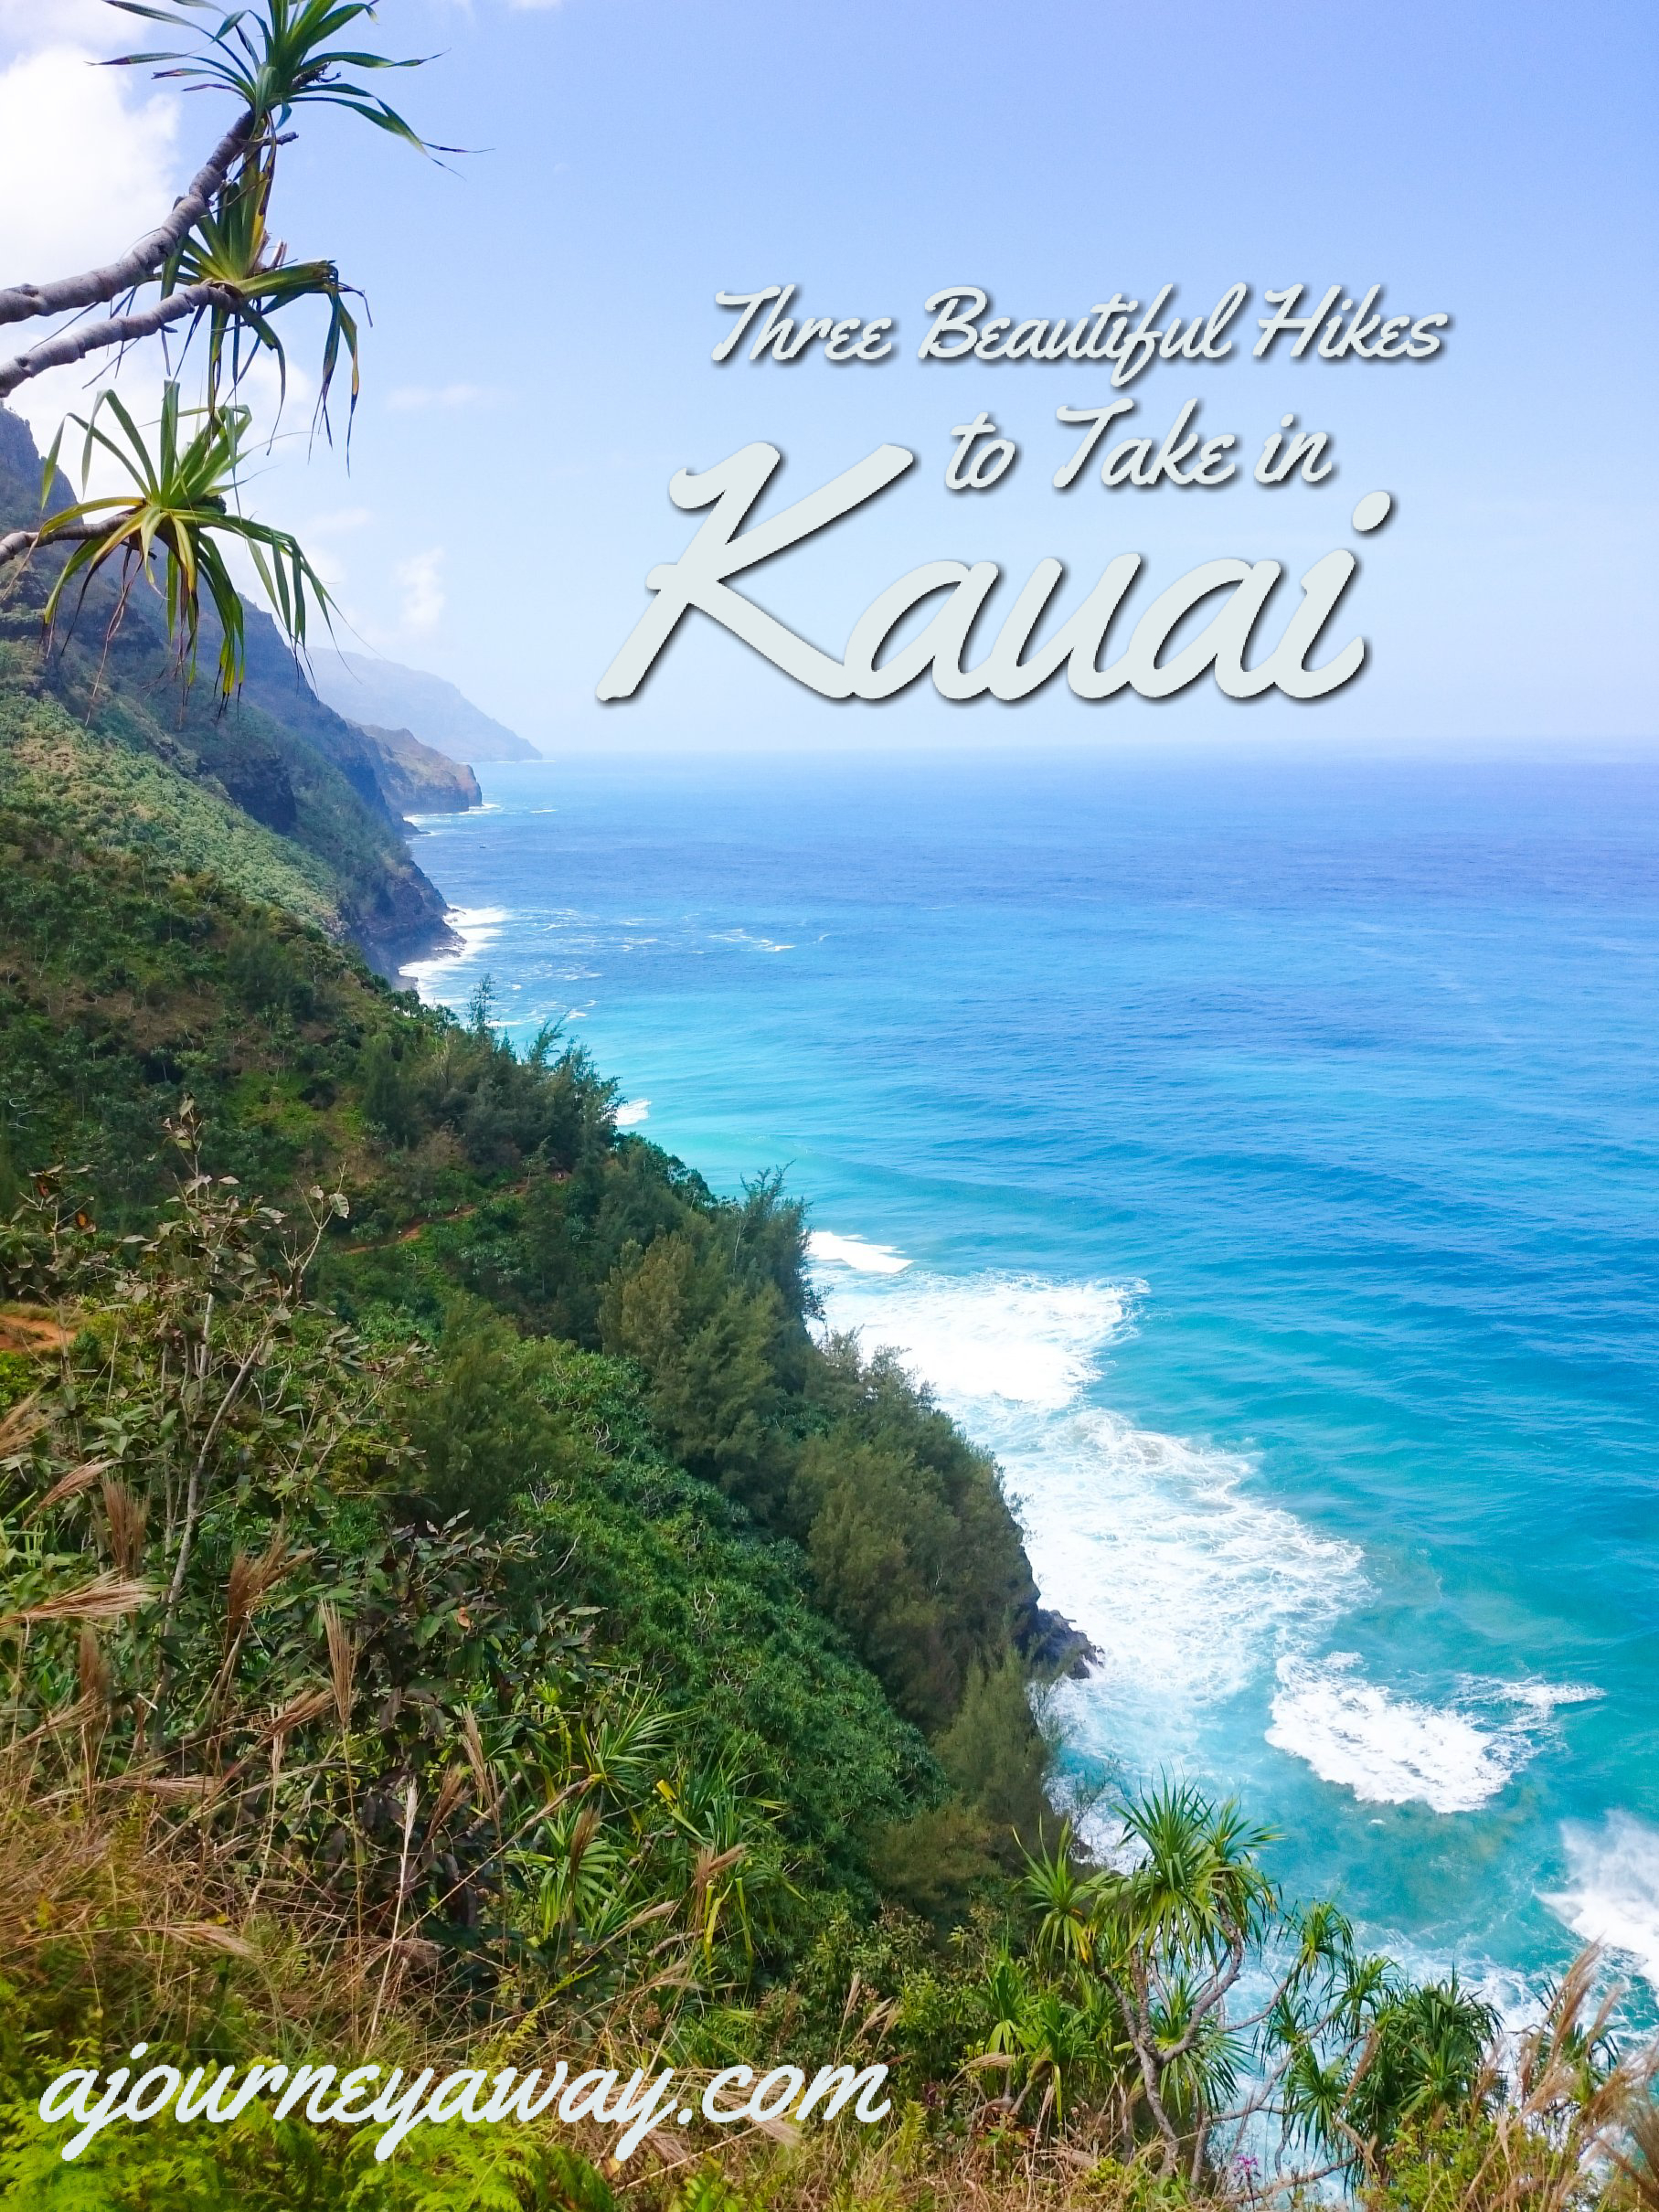 Three beautiful hikes to take in Kauai, Hawaii